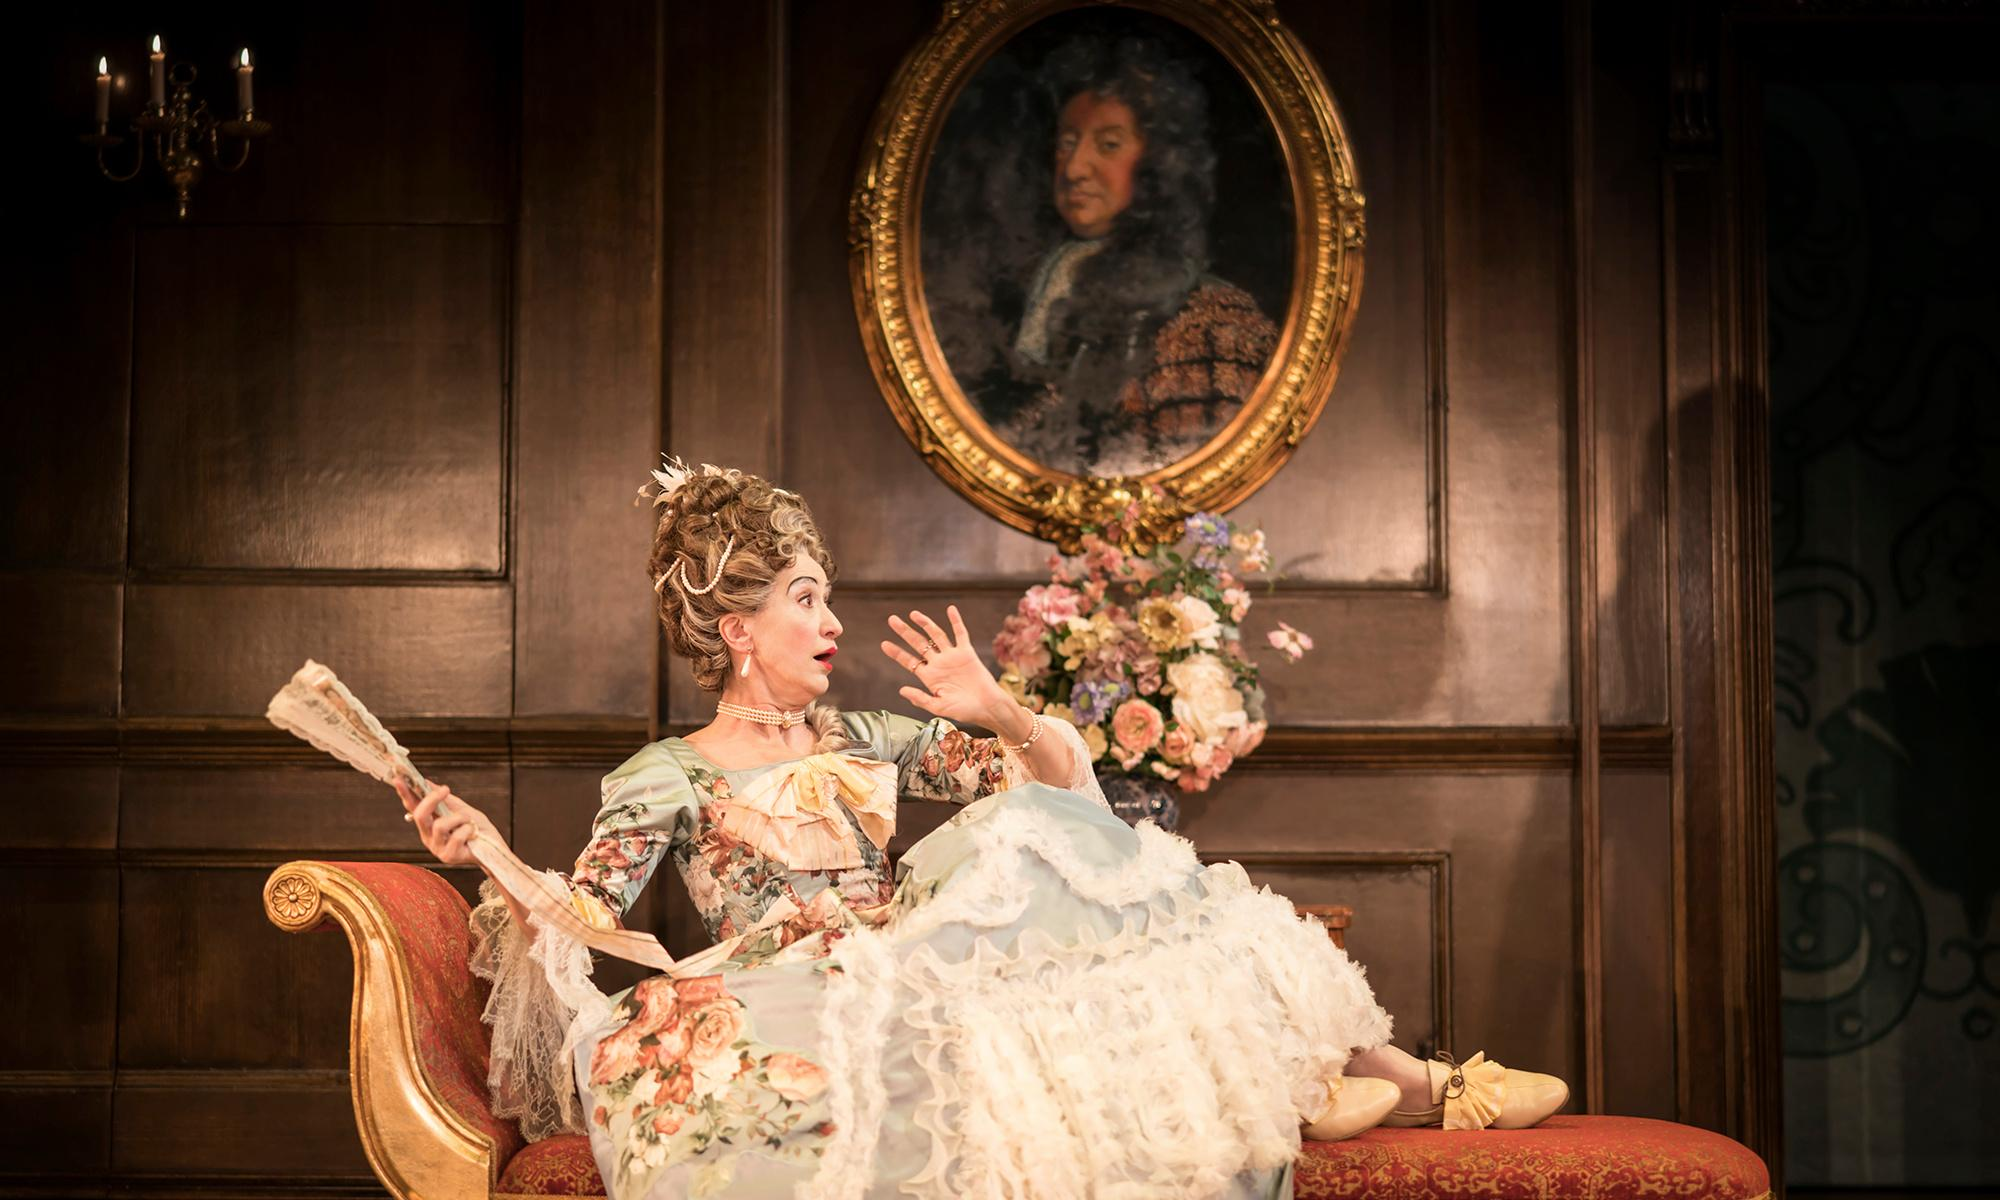 Sex, money and idiots in power: Restoration comedy's endless appeal